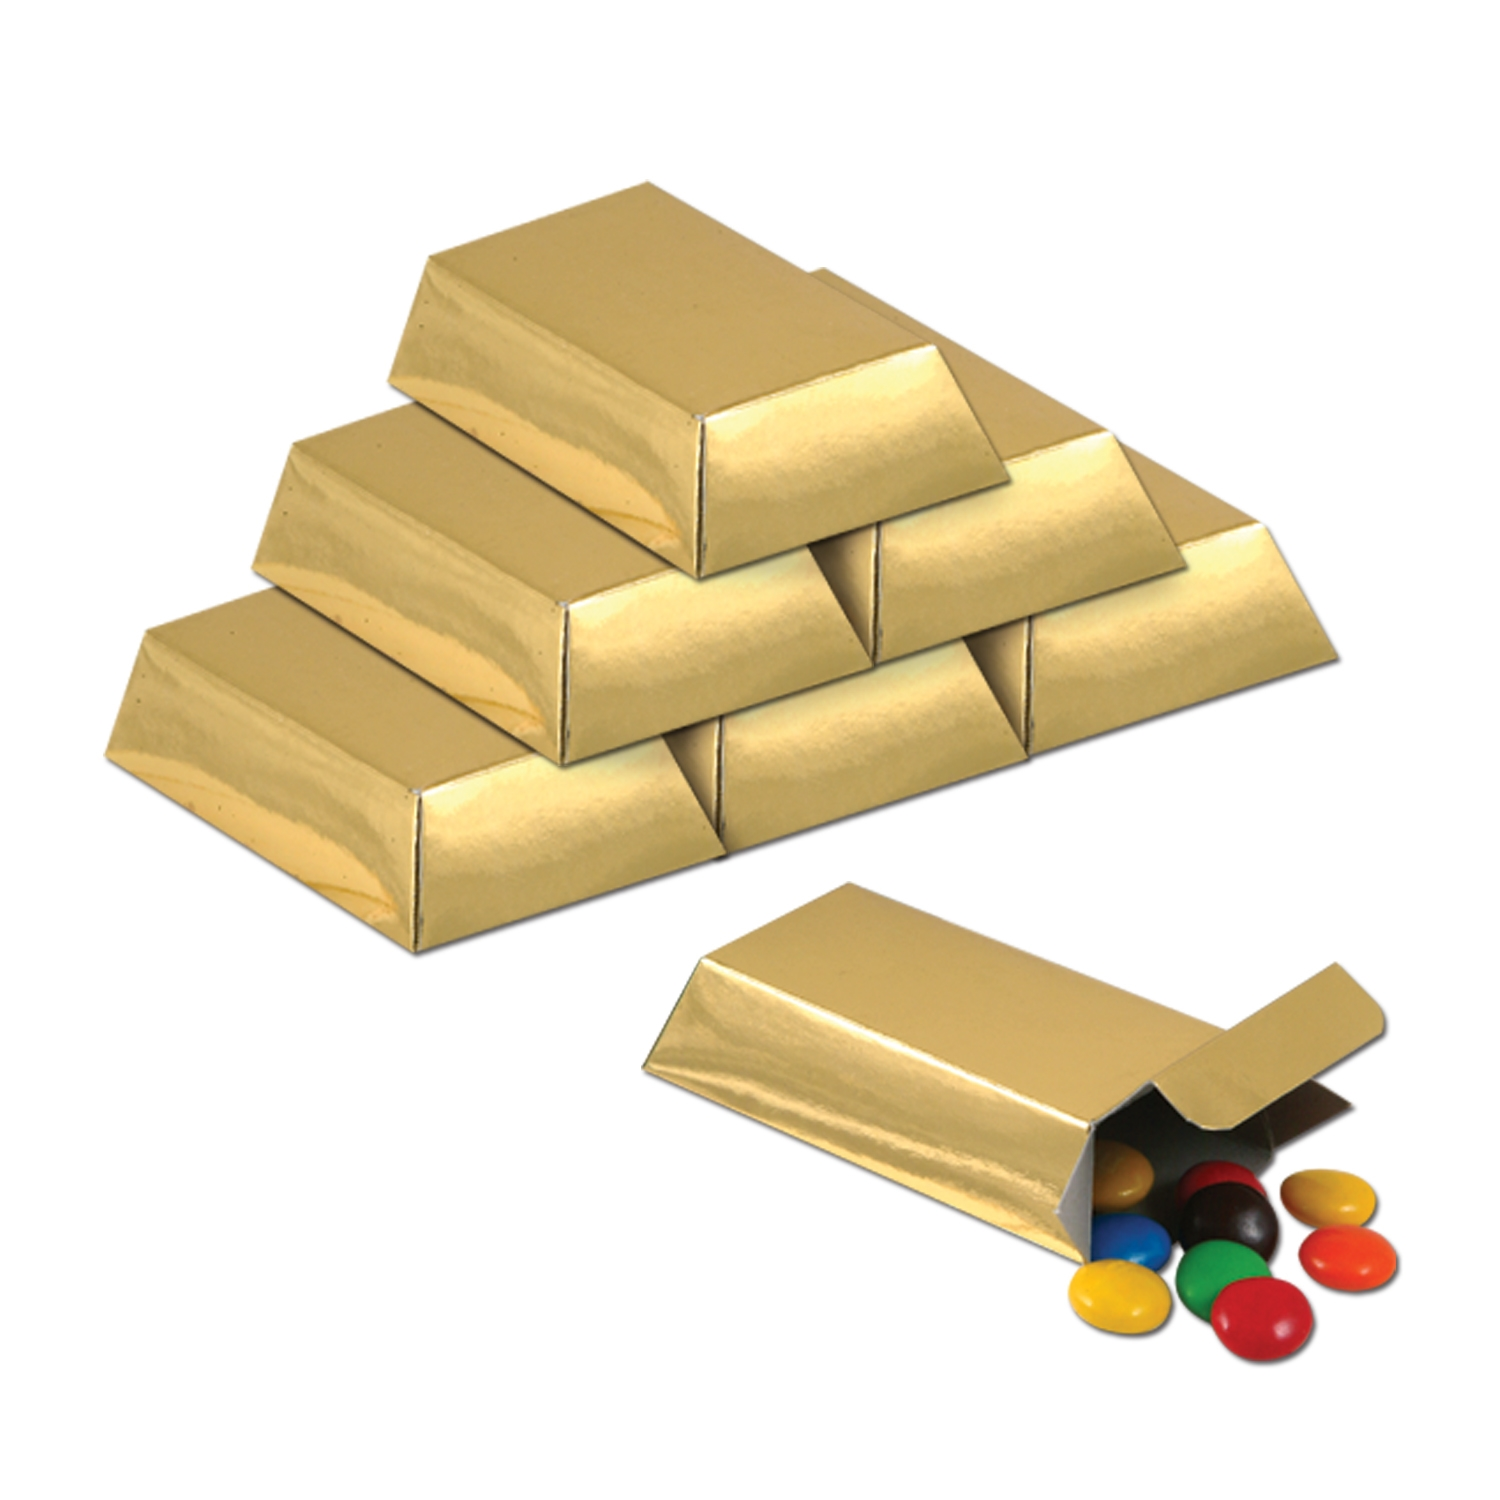 Foil Gold Bar Favor Boxes (Pack of 144) gold, favor boxes, candy boxes, gold bars, party favors